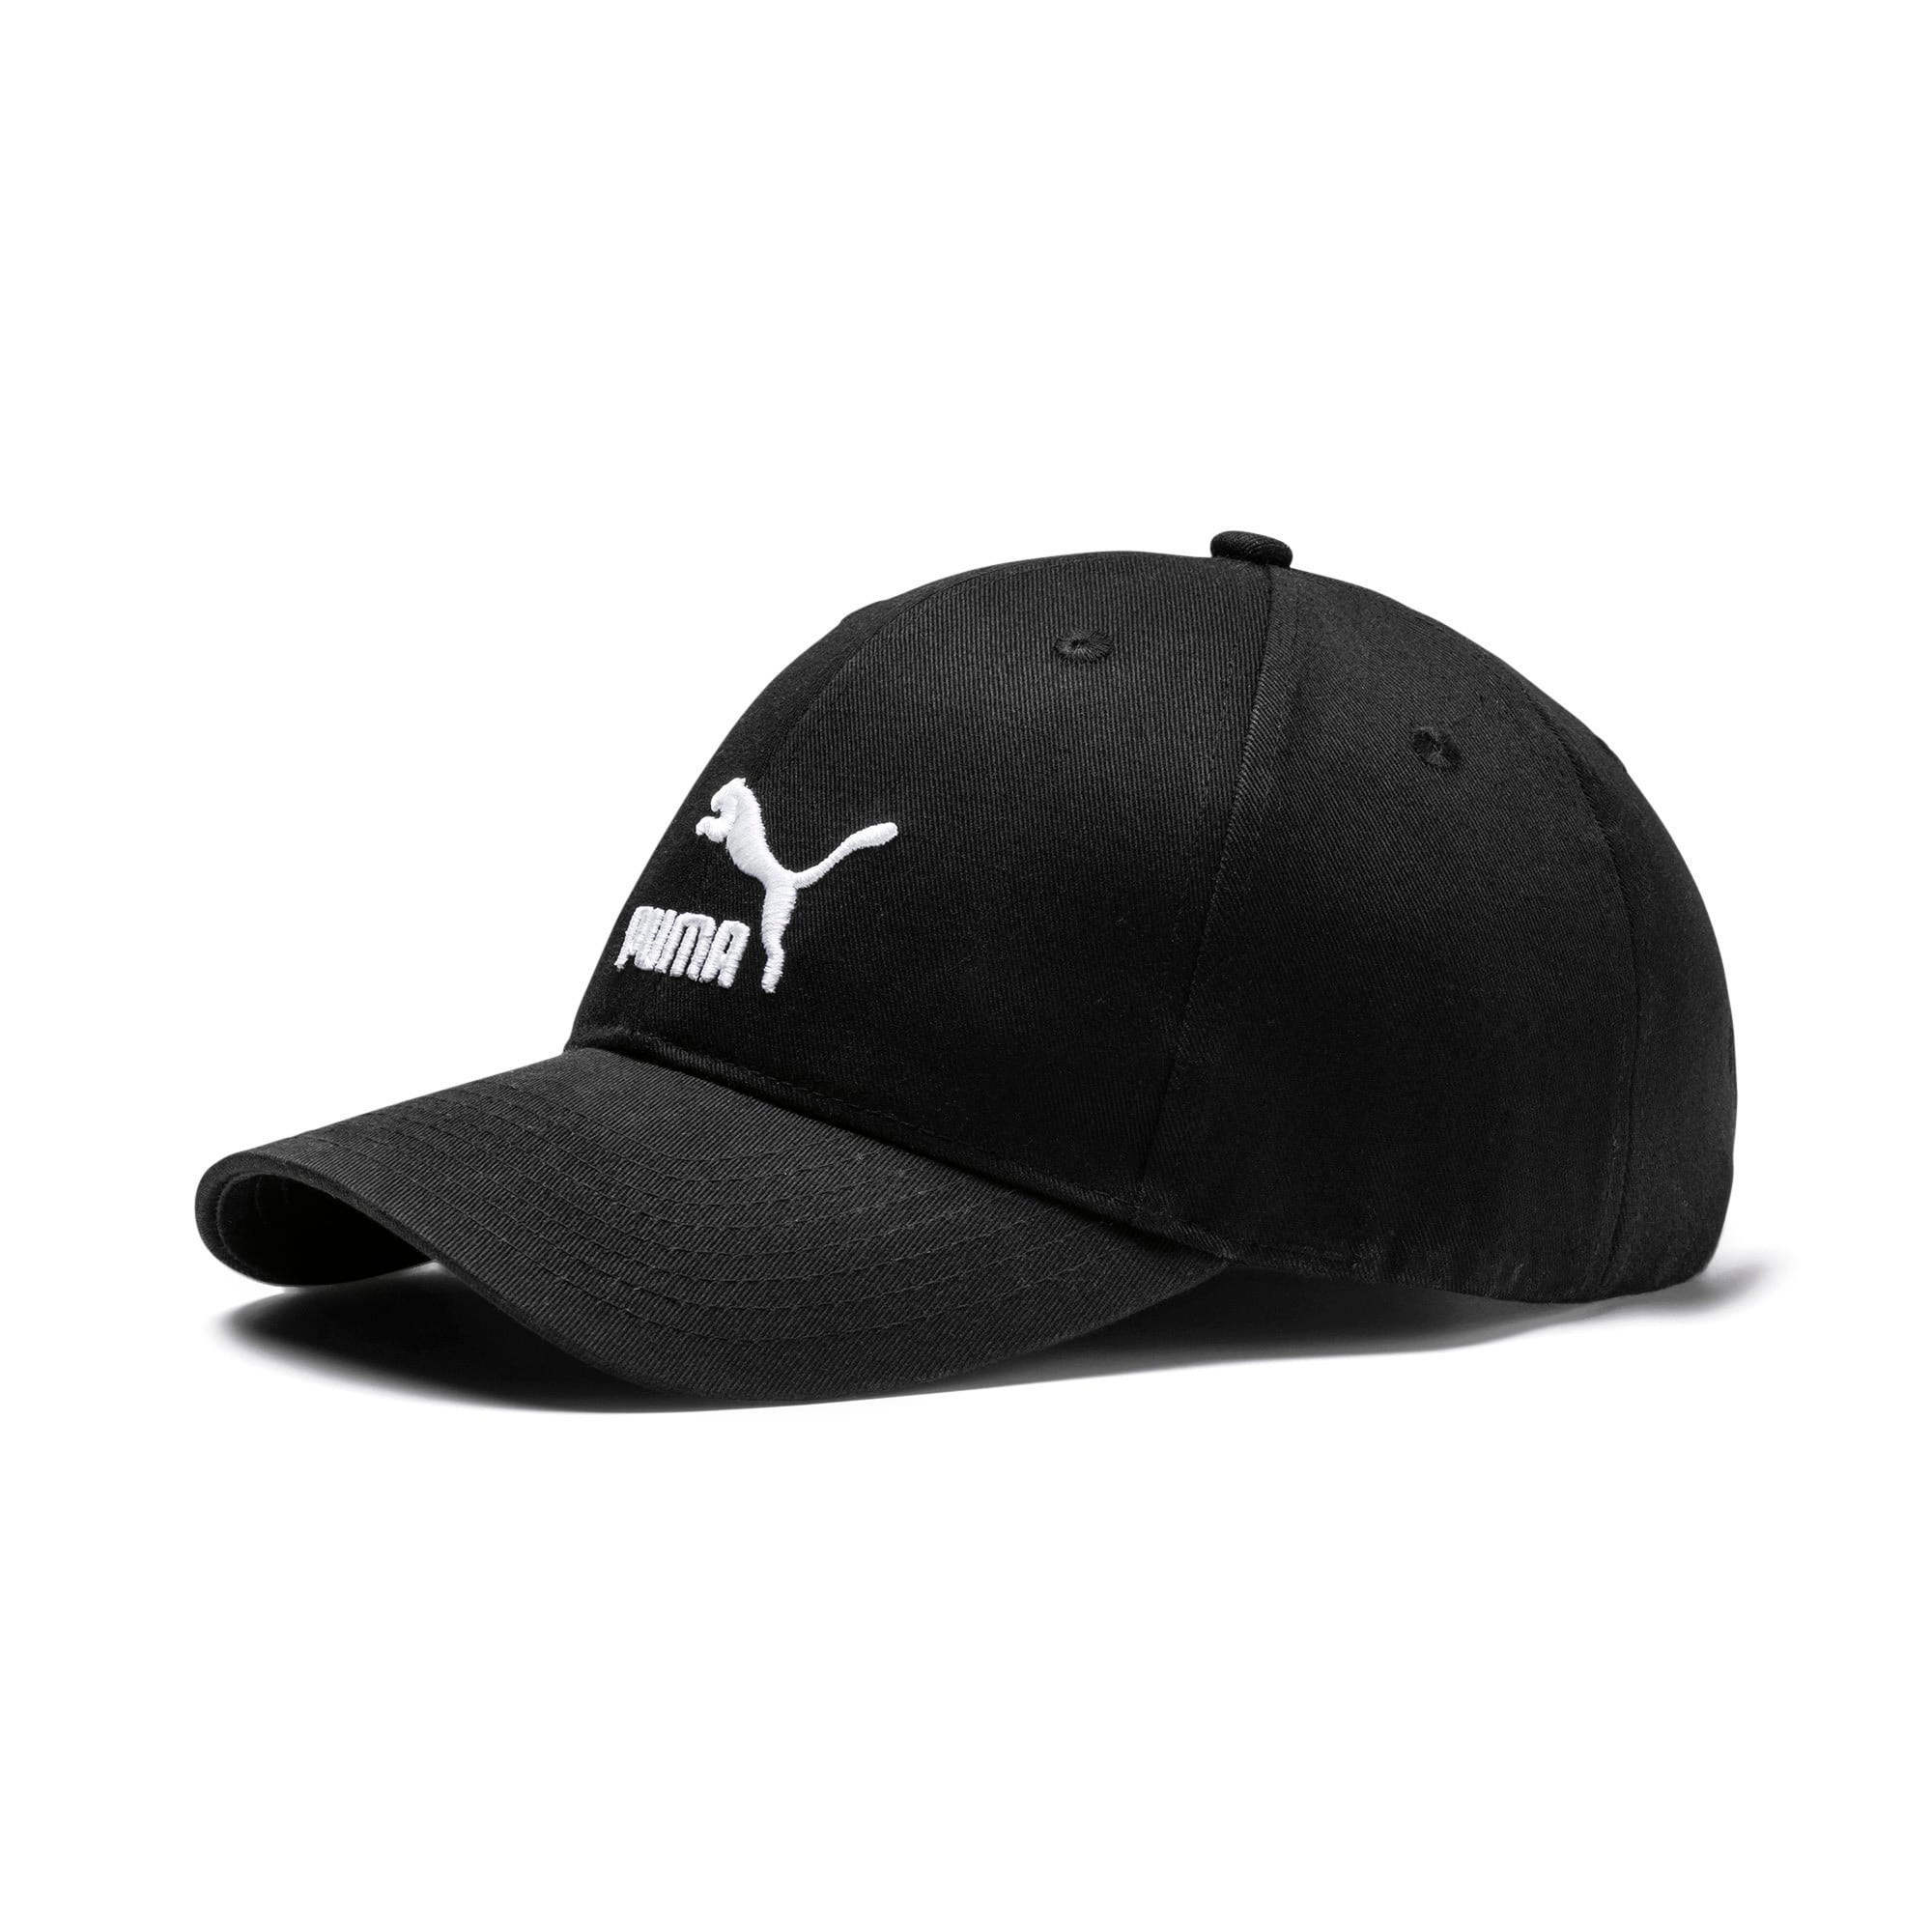 Thumbnail 1 of Archive baseballpet met logo, Puma Black, medium